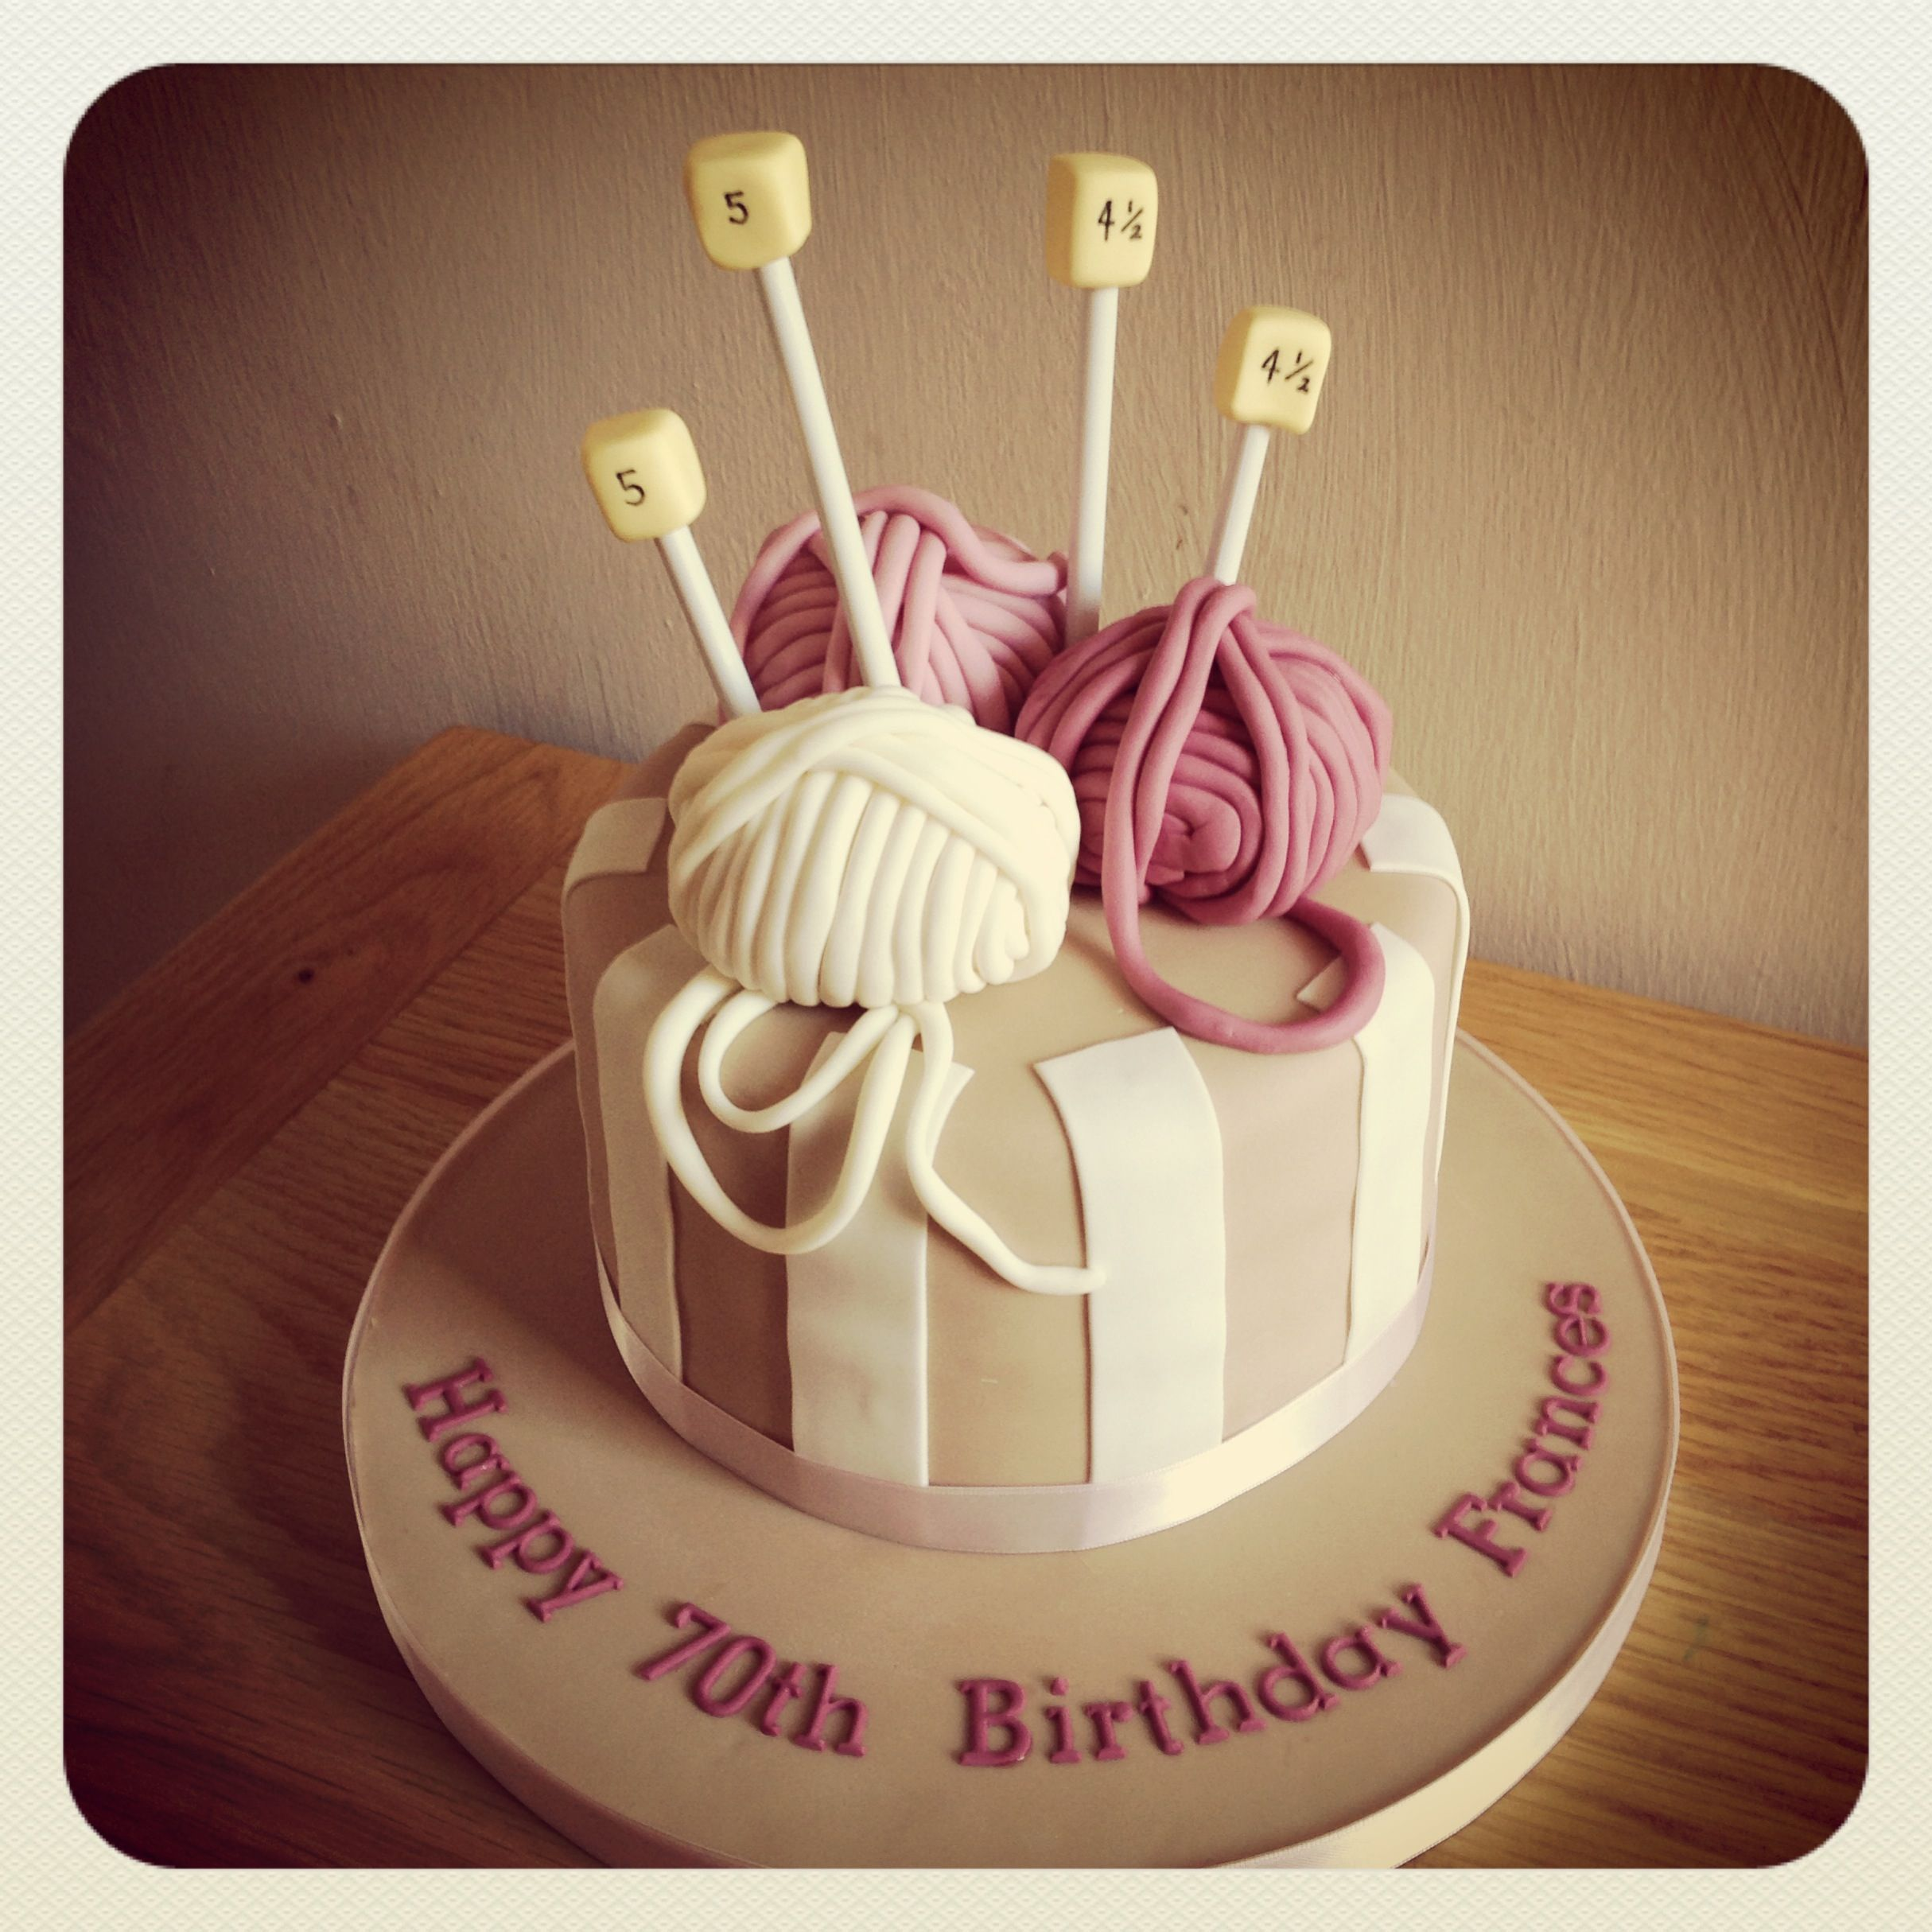 Knitting themed birthday cake Lemon drizzle filled with layers of